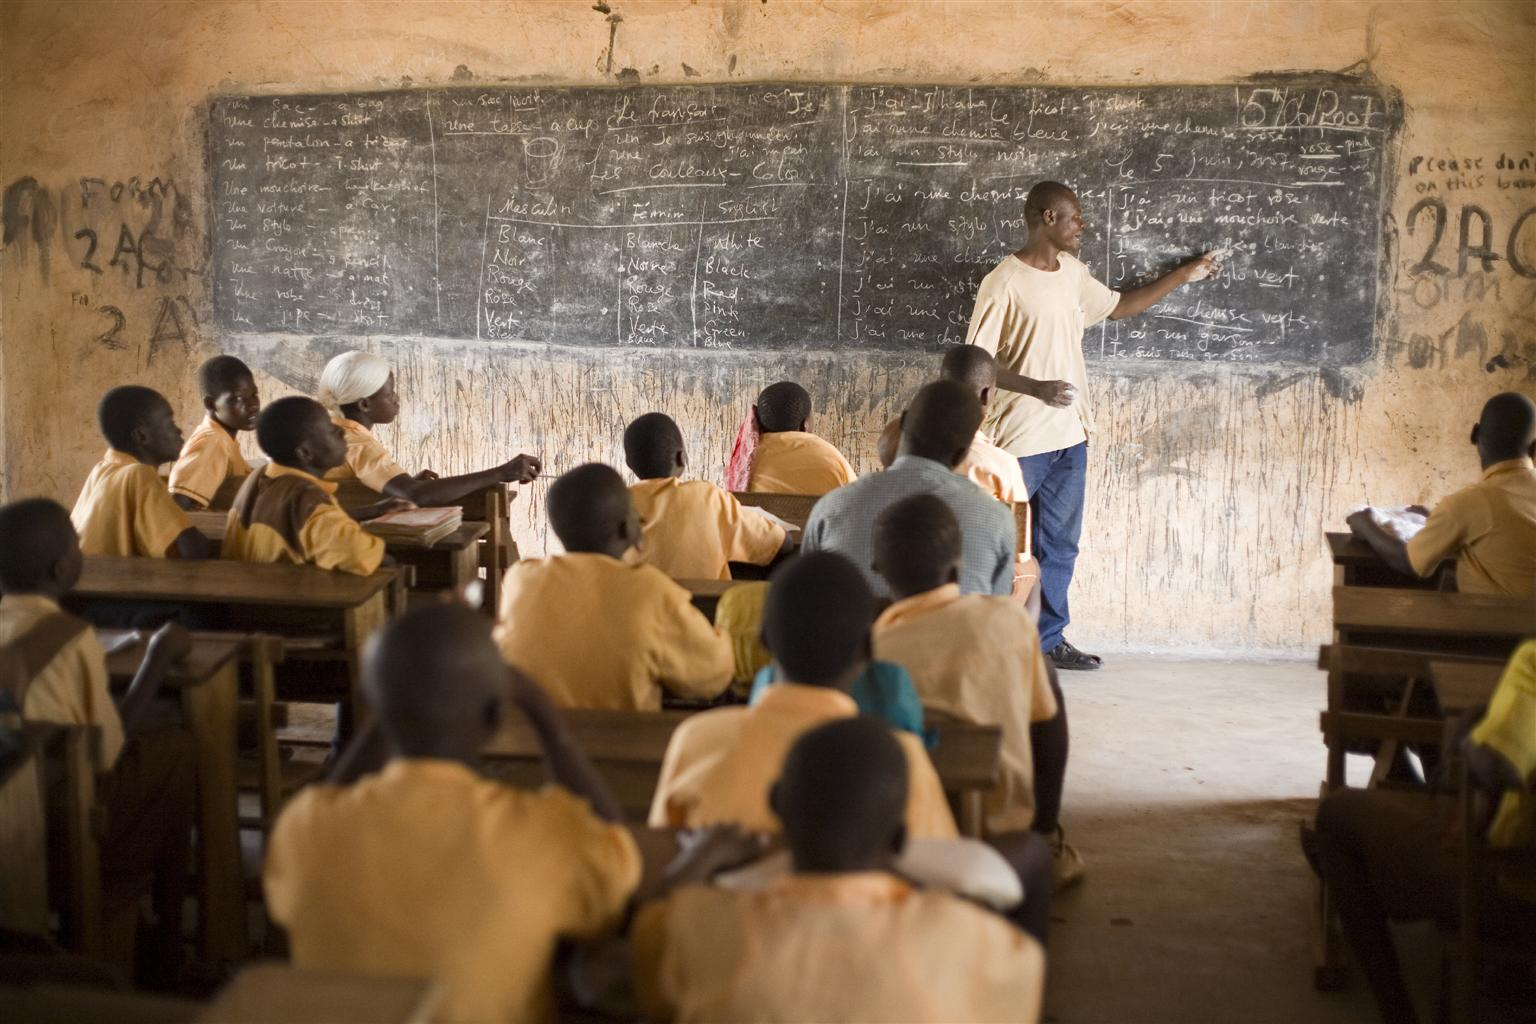 Children attend French class at a school in Ghana.